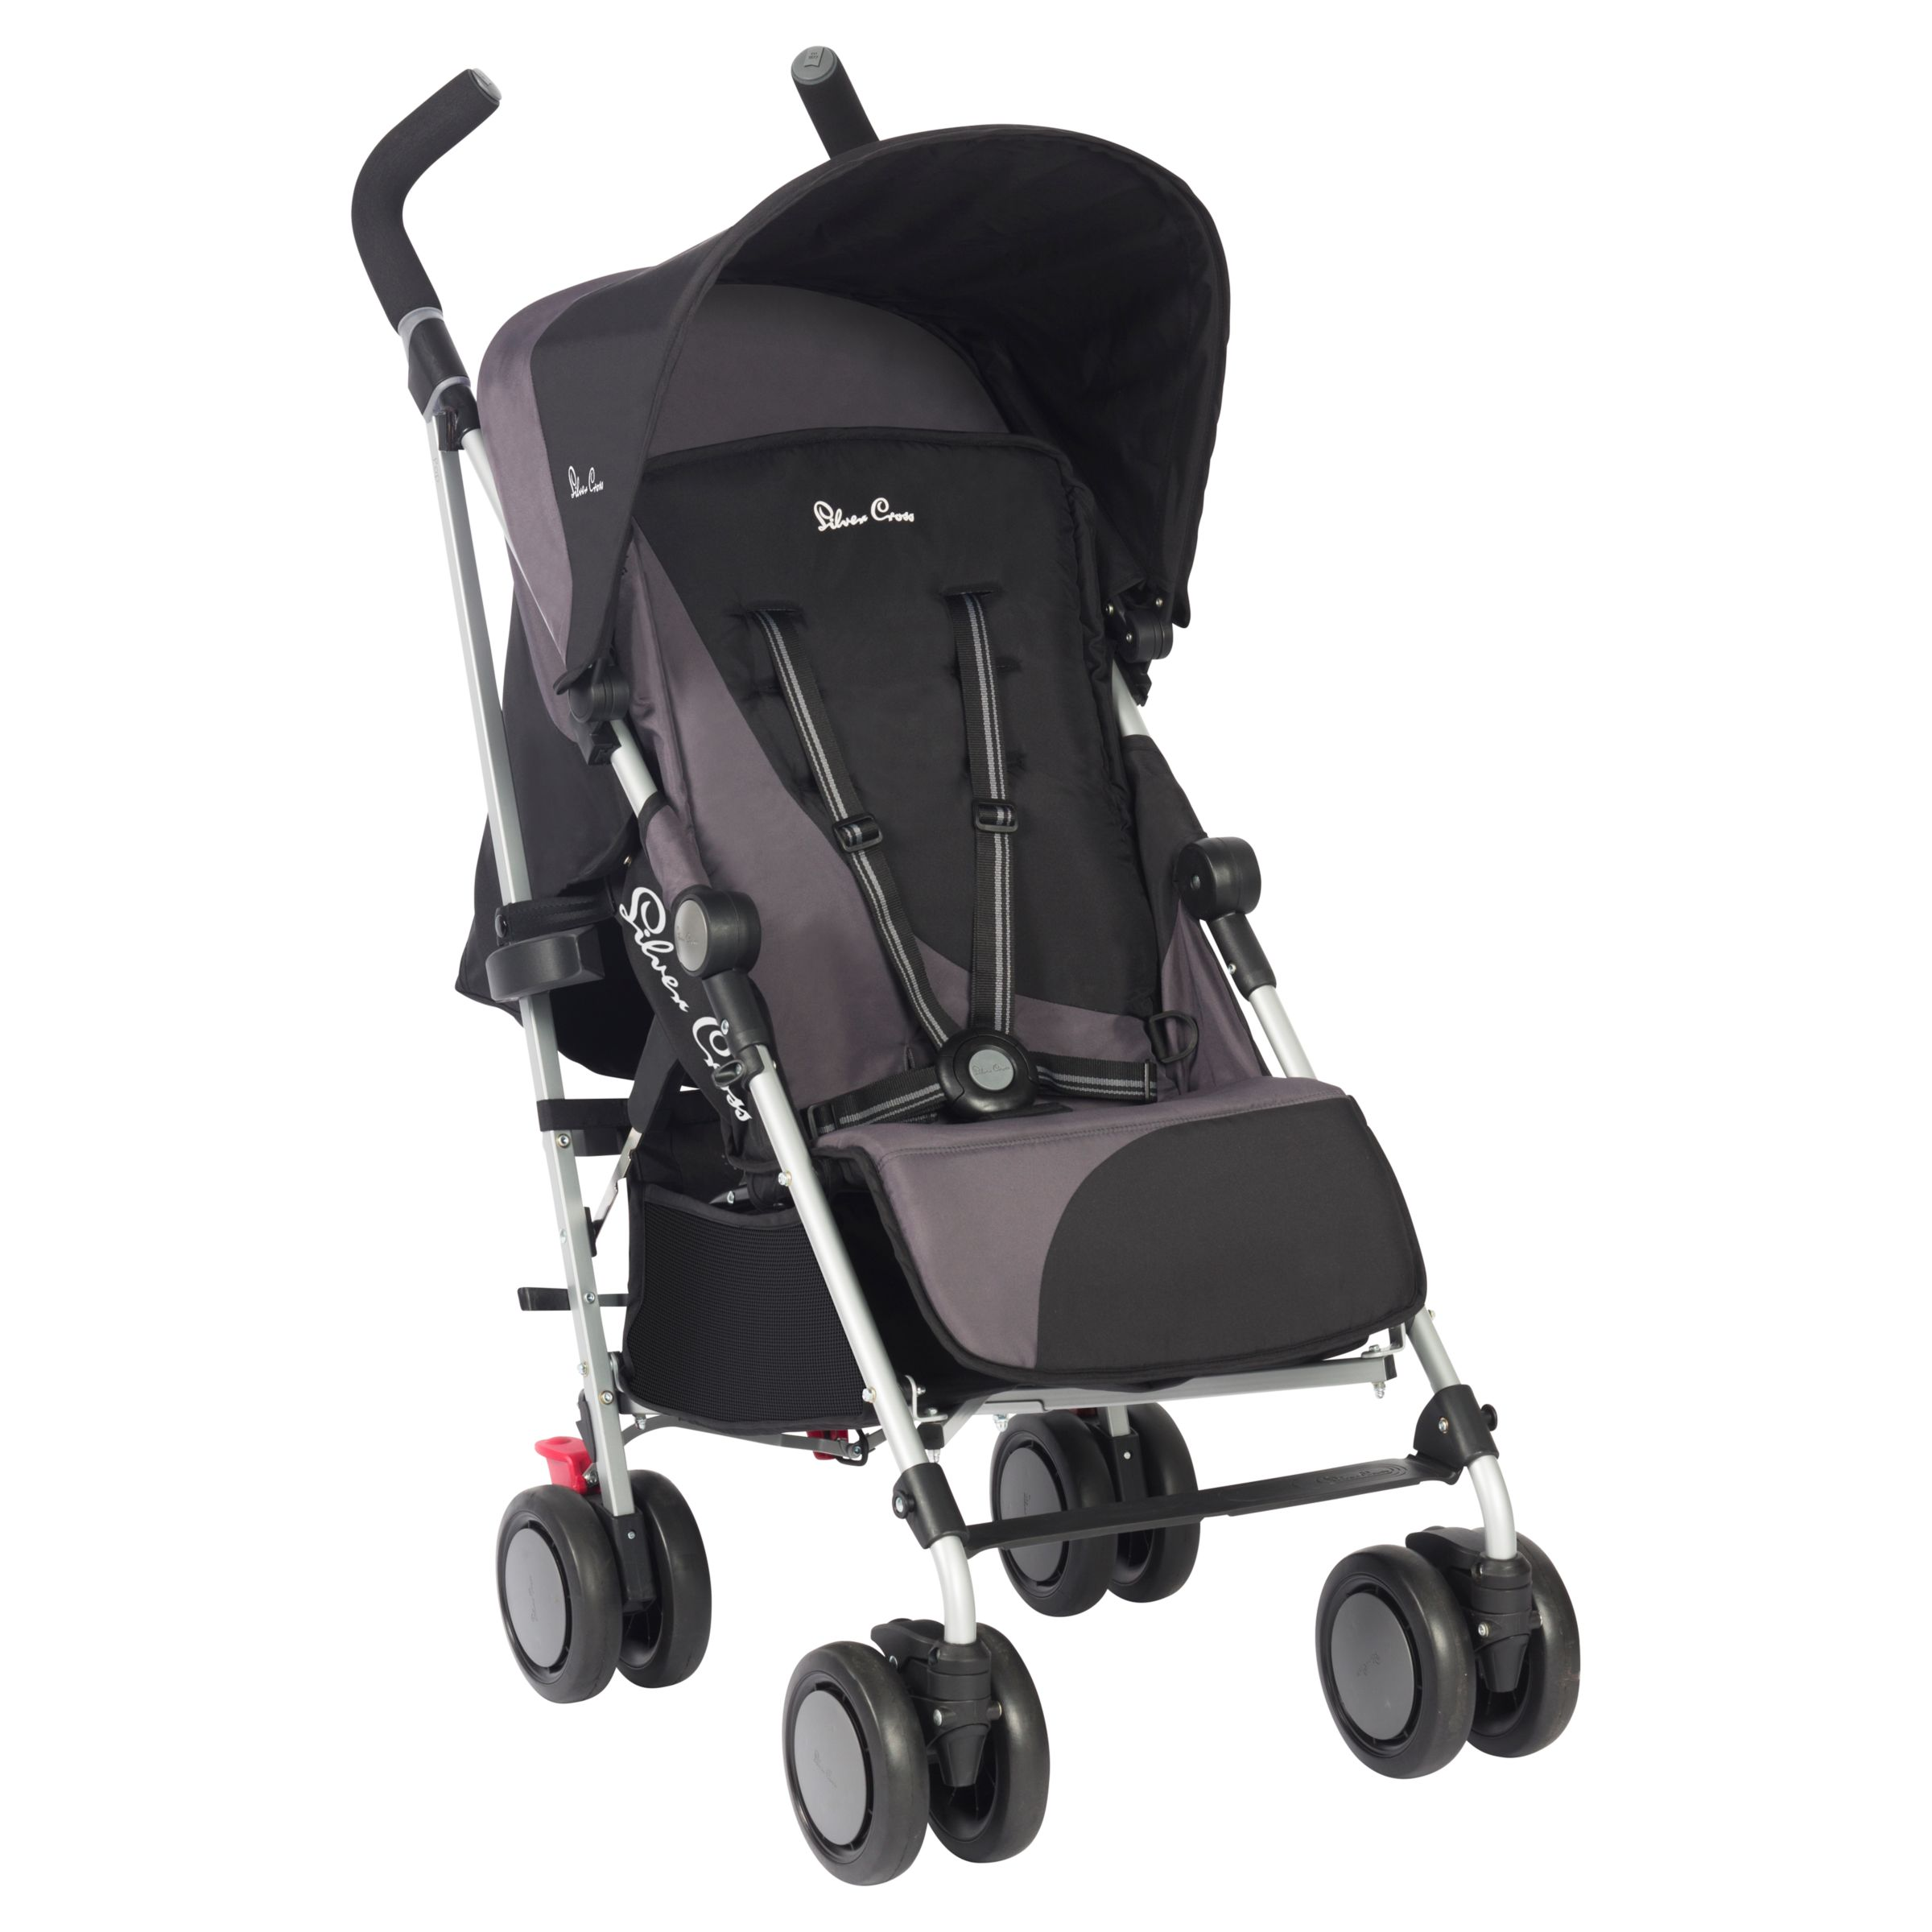 Baby Pram John Lewis Silver Cross Pop Stroller Black At John Lewis Partners